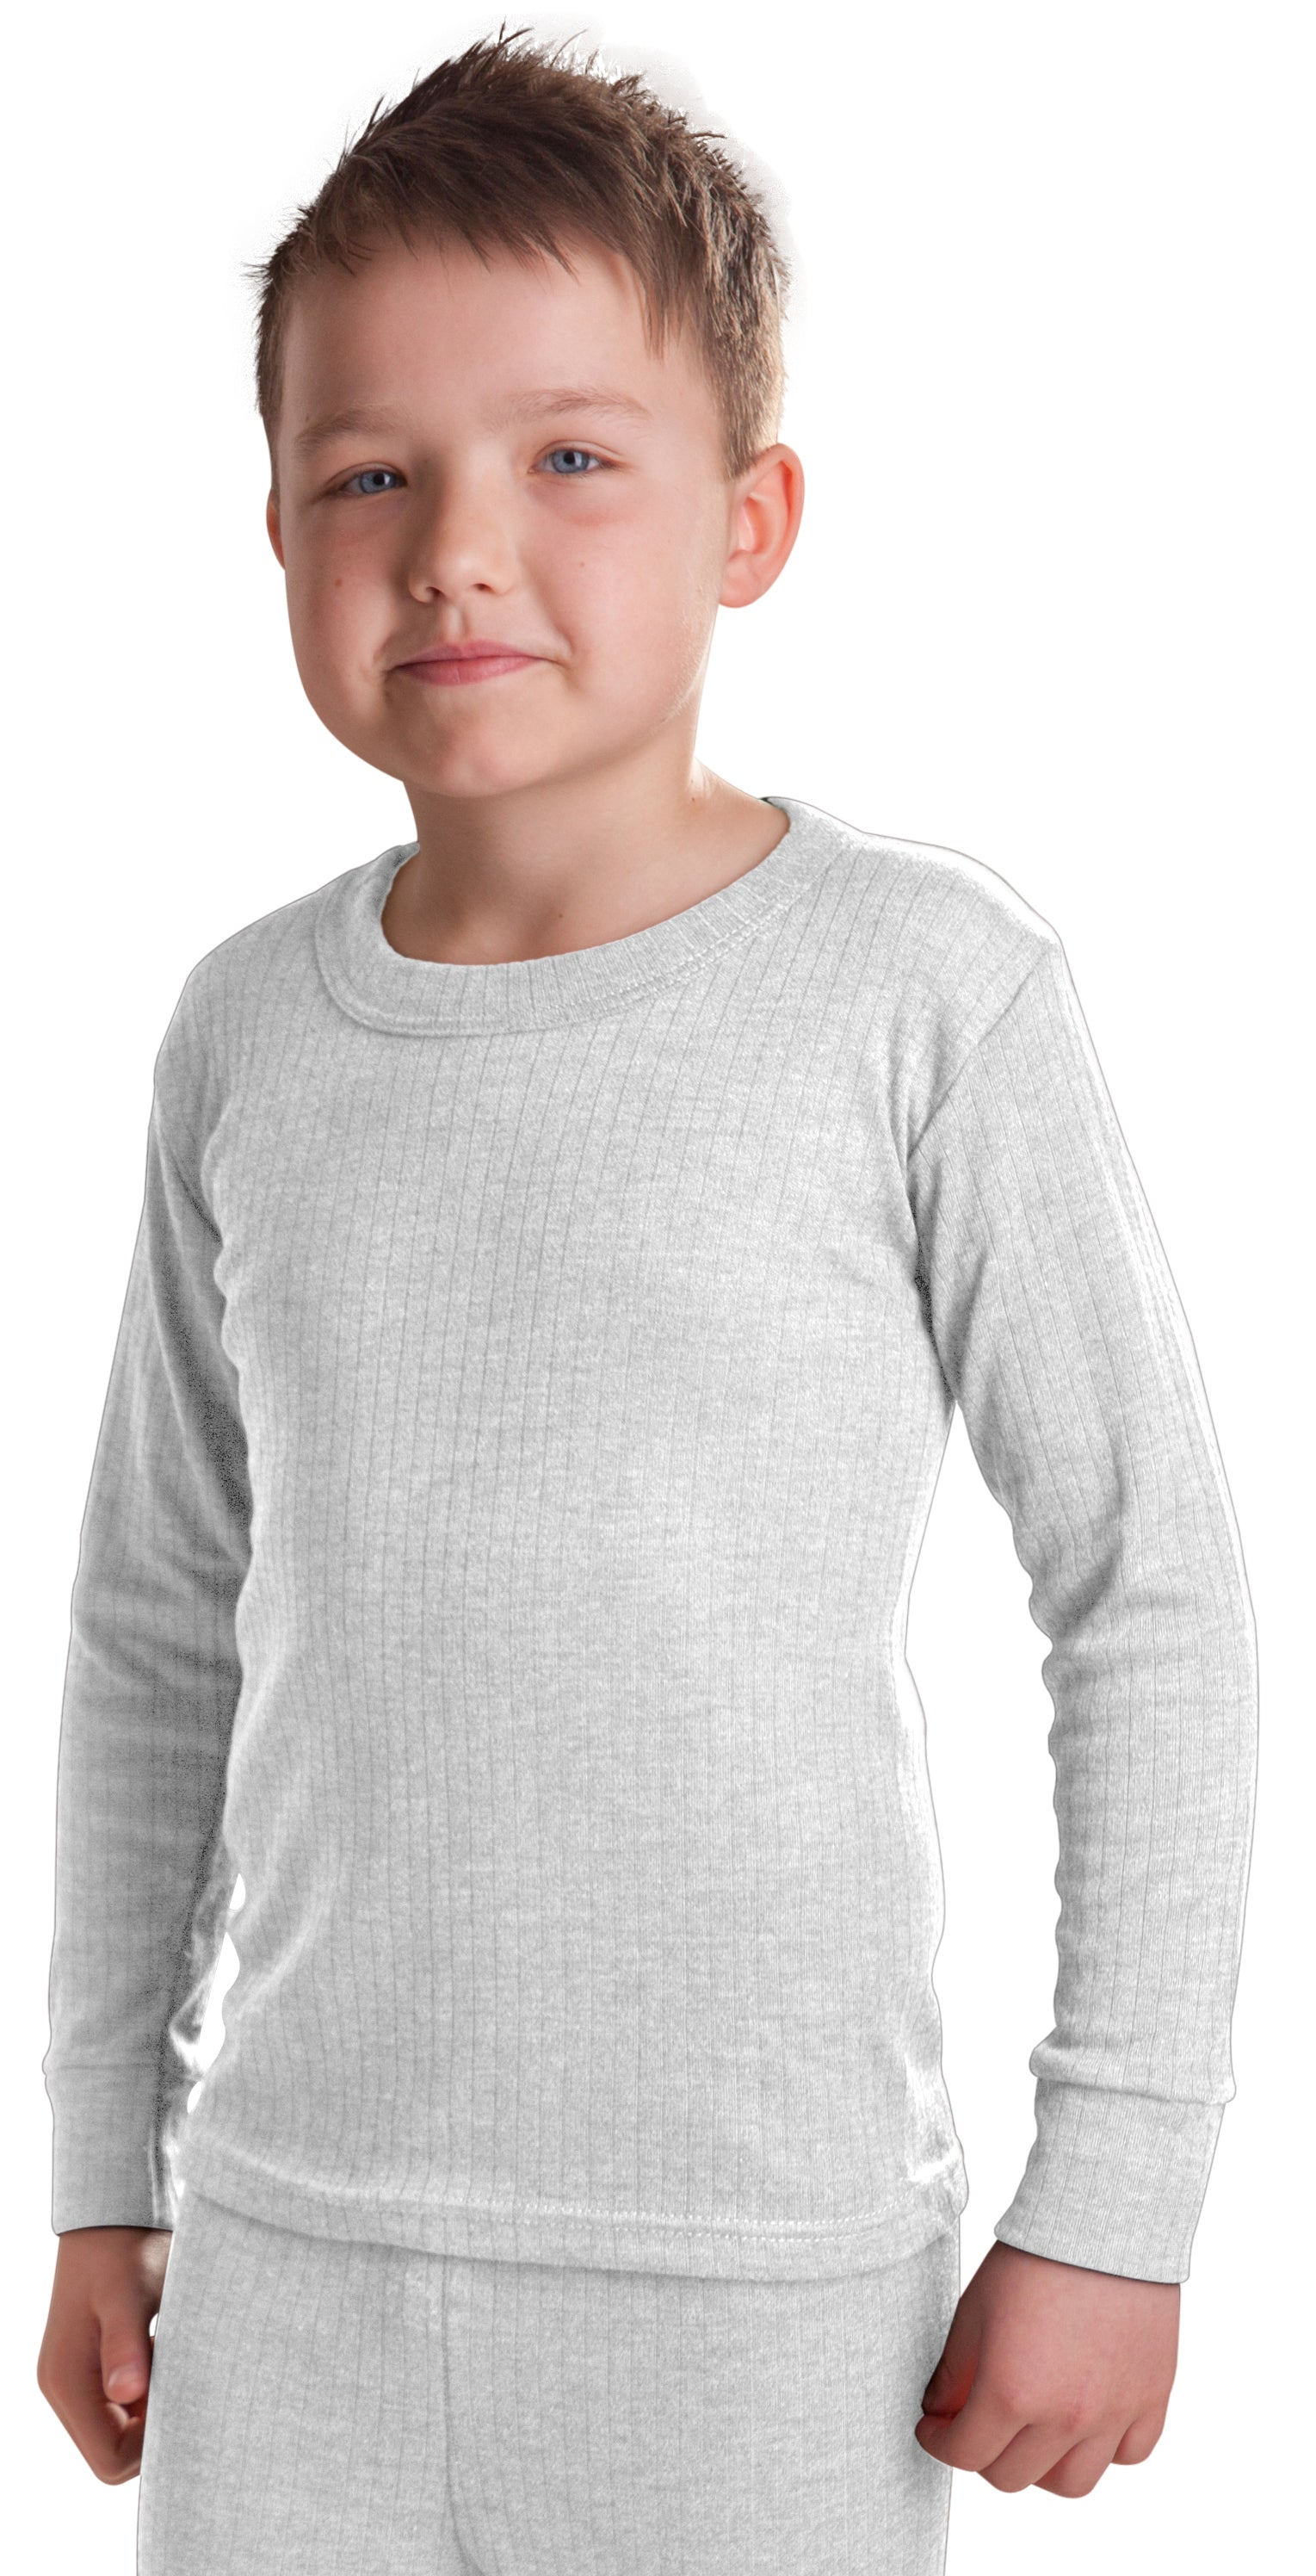 Extra Warm British Made RP Collections® Boys Thermal Underwear Long-Sleeve Top